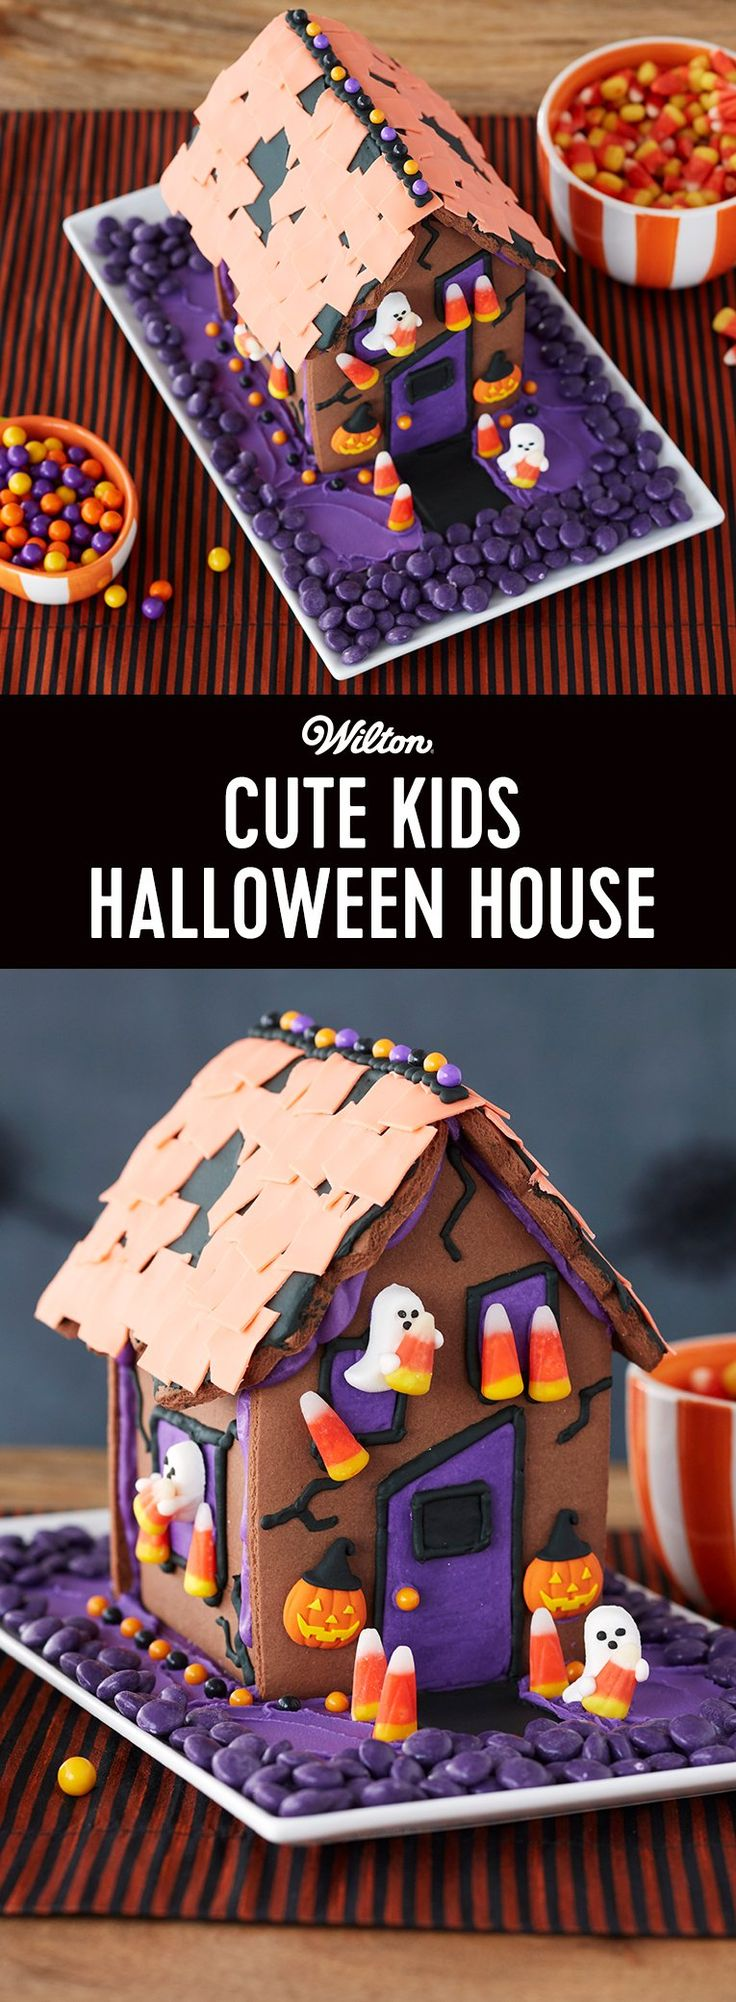 Cute Kids Halloween House - Any kid will tell you how much fun Halloween can be! On those exciting days leading up to trick-or-treating, get the family together and join in the fun. Start with the Wilton® Ready to Decorate Halloween Cookie House Kit and add Jack-O'-Lantern and Ghost Icing Decorations. You will find out how easy it is to decorate a kid-friendly Halloween house that is as cute as can be!